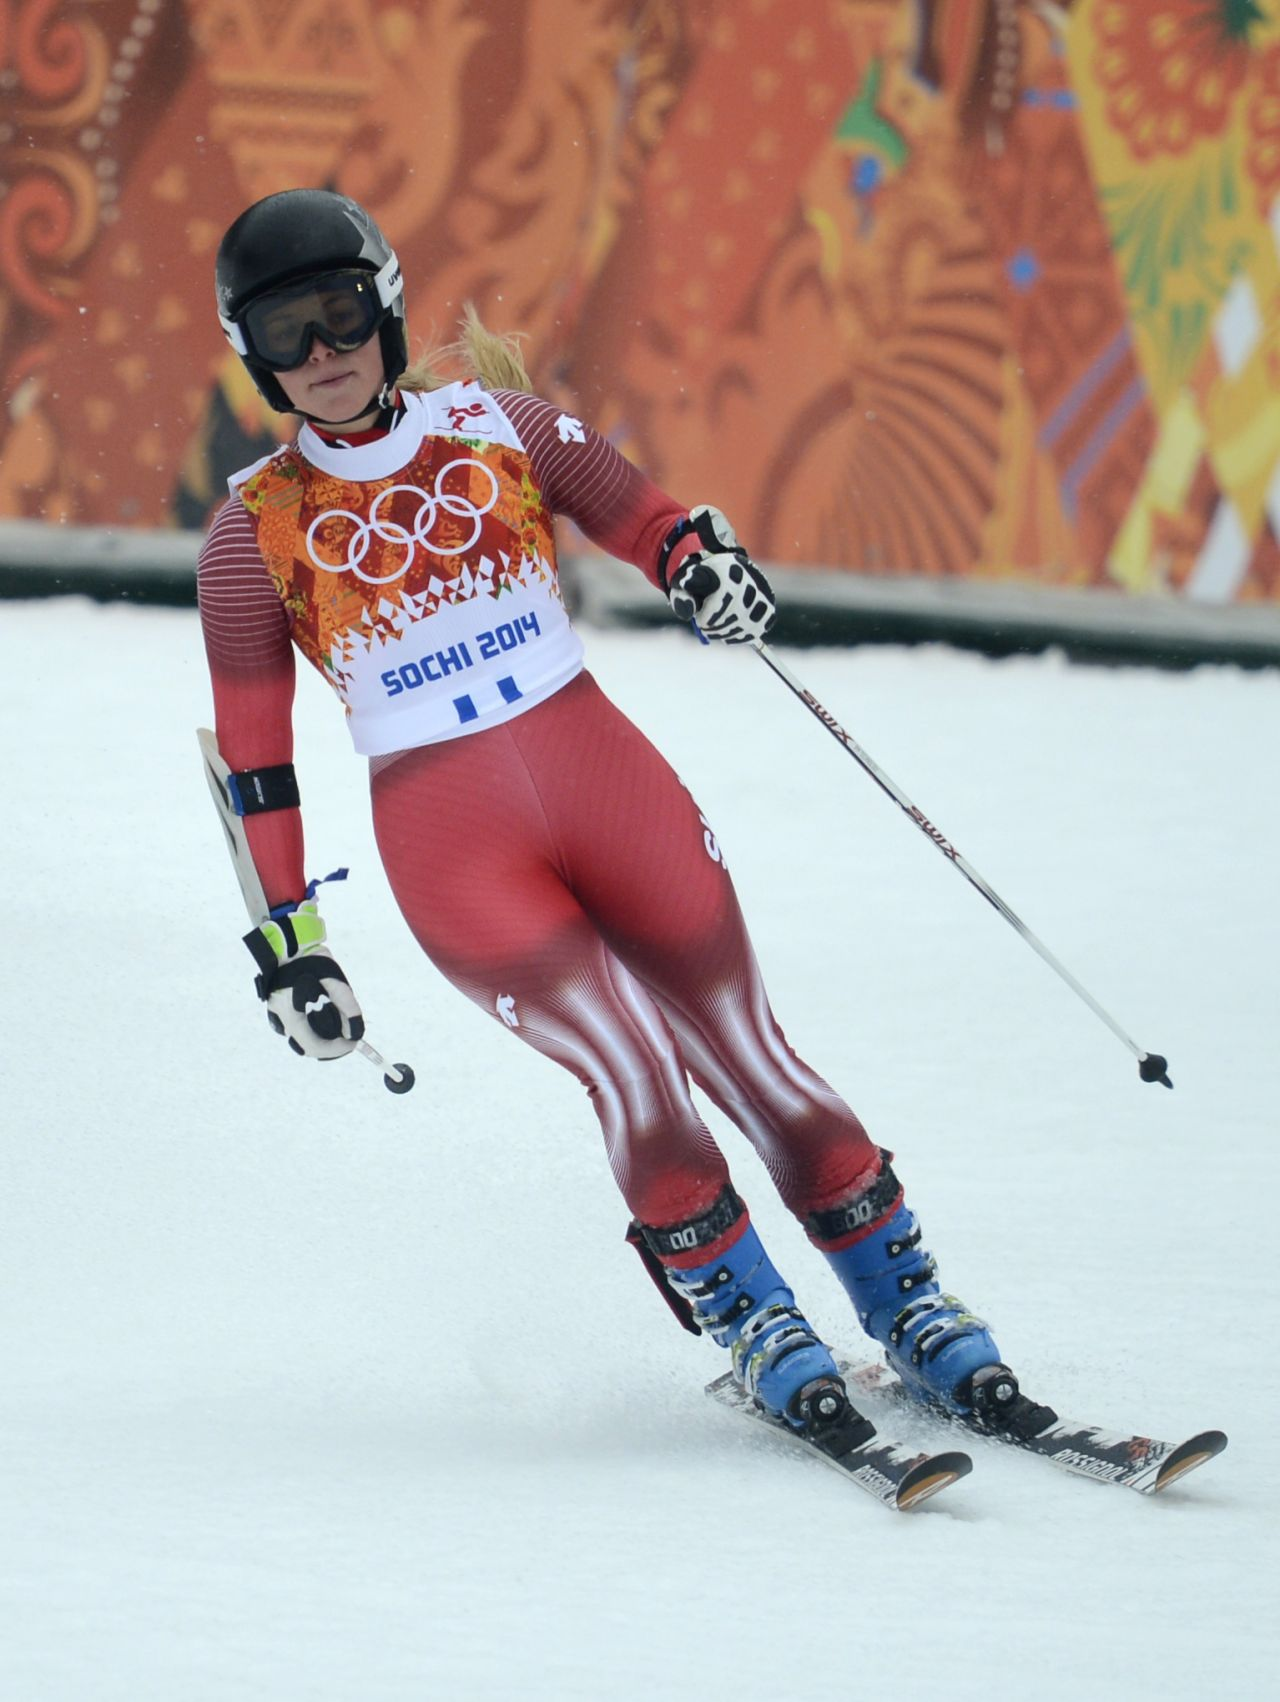 Lara Gut - 2014 Sochi Winter Olympics - Alpine Skiing Ladies